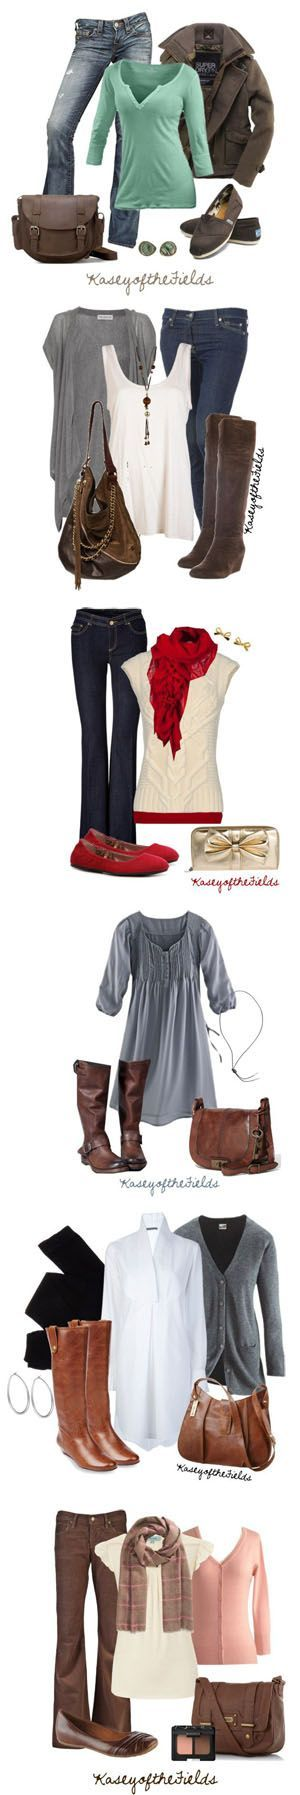 Are you almost ready for Fall? These Fall fashion ideas for women are perfect! Whether you want to rock a dress or some cute boots, these outfit ideas are so cute and practical! Love the idea of all the denim and cute boots!